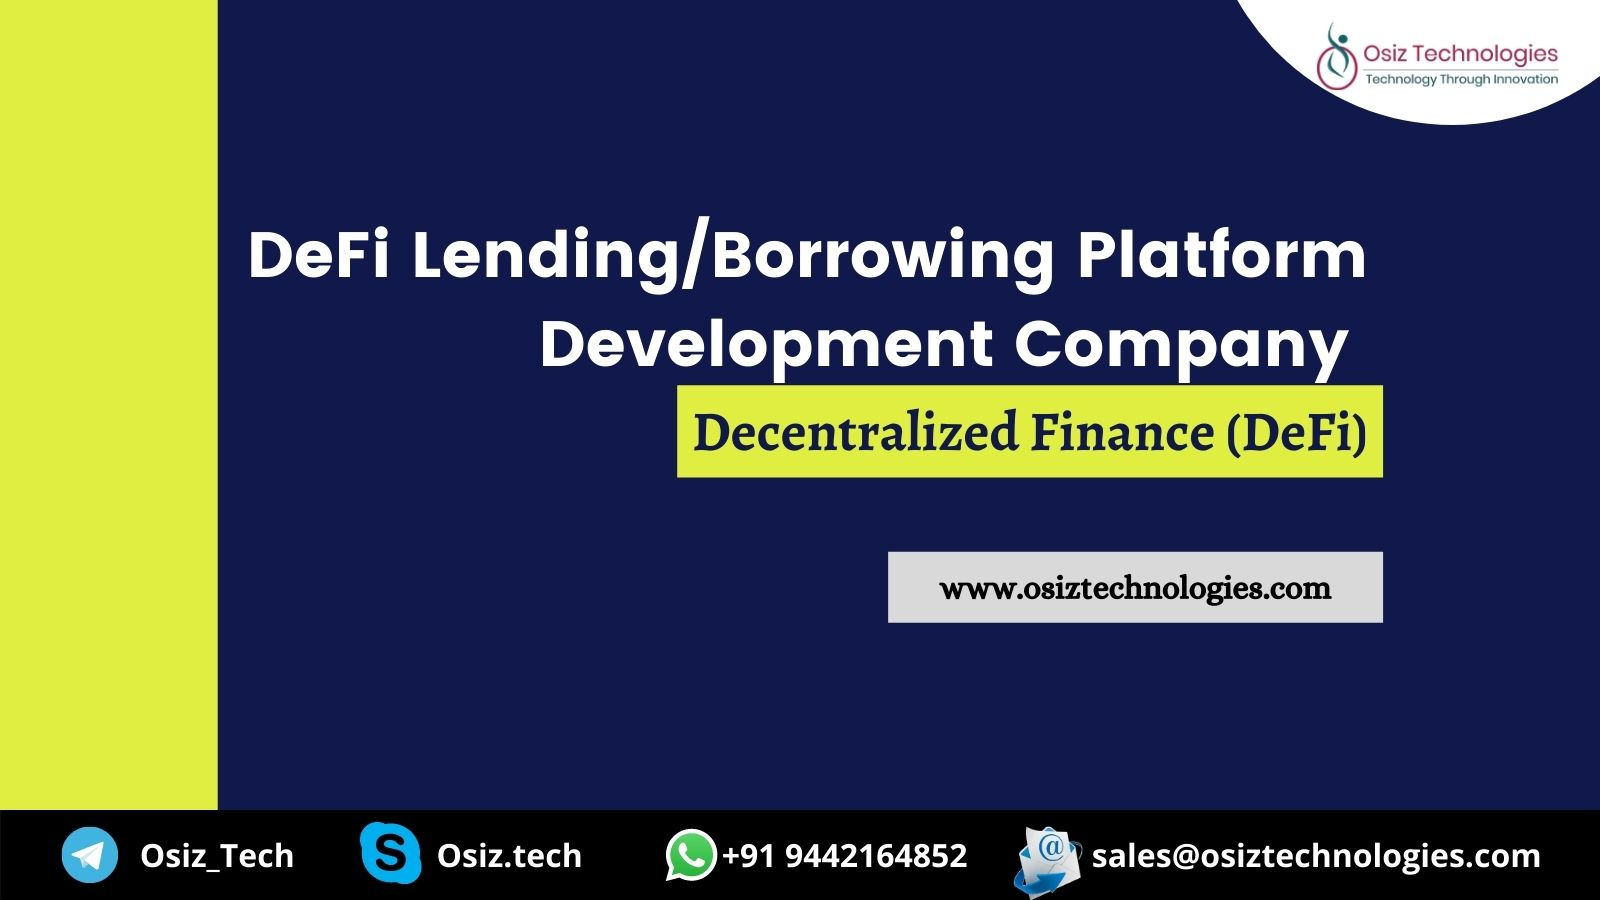 DeFi Lending/Borrowing Platform Development Company - Launch your own DeFi platform and redefine the world of finance